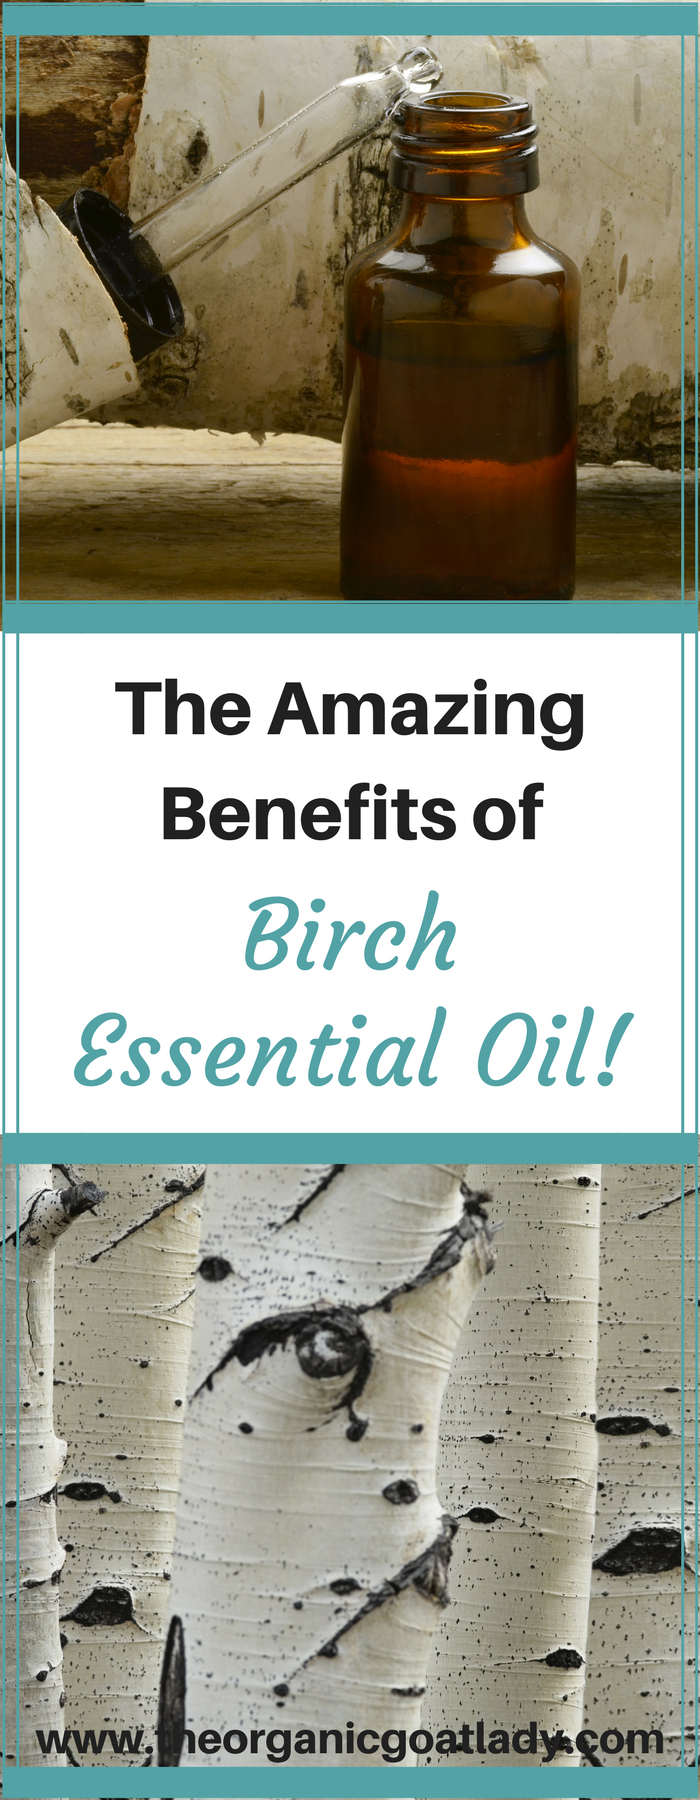 The Amazing Benefits of Birch Essential Oil!